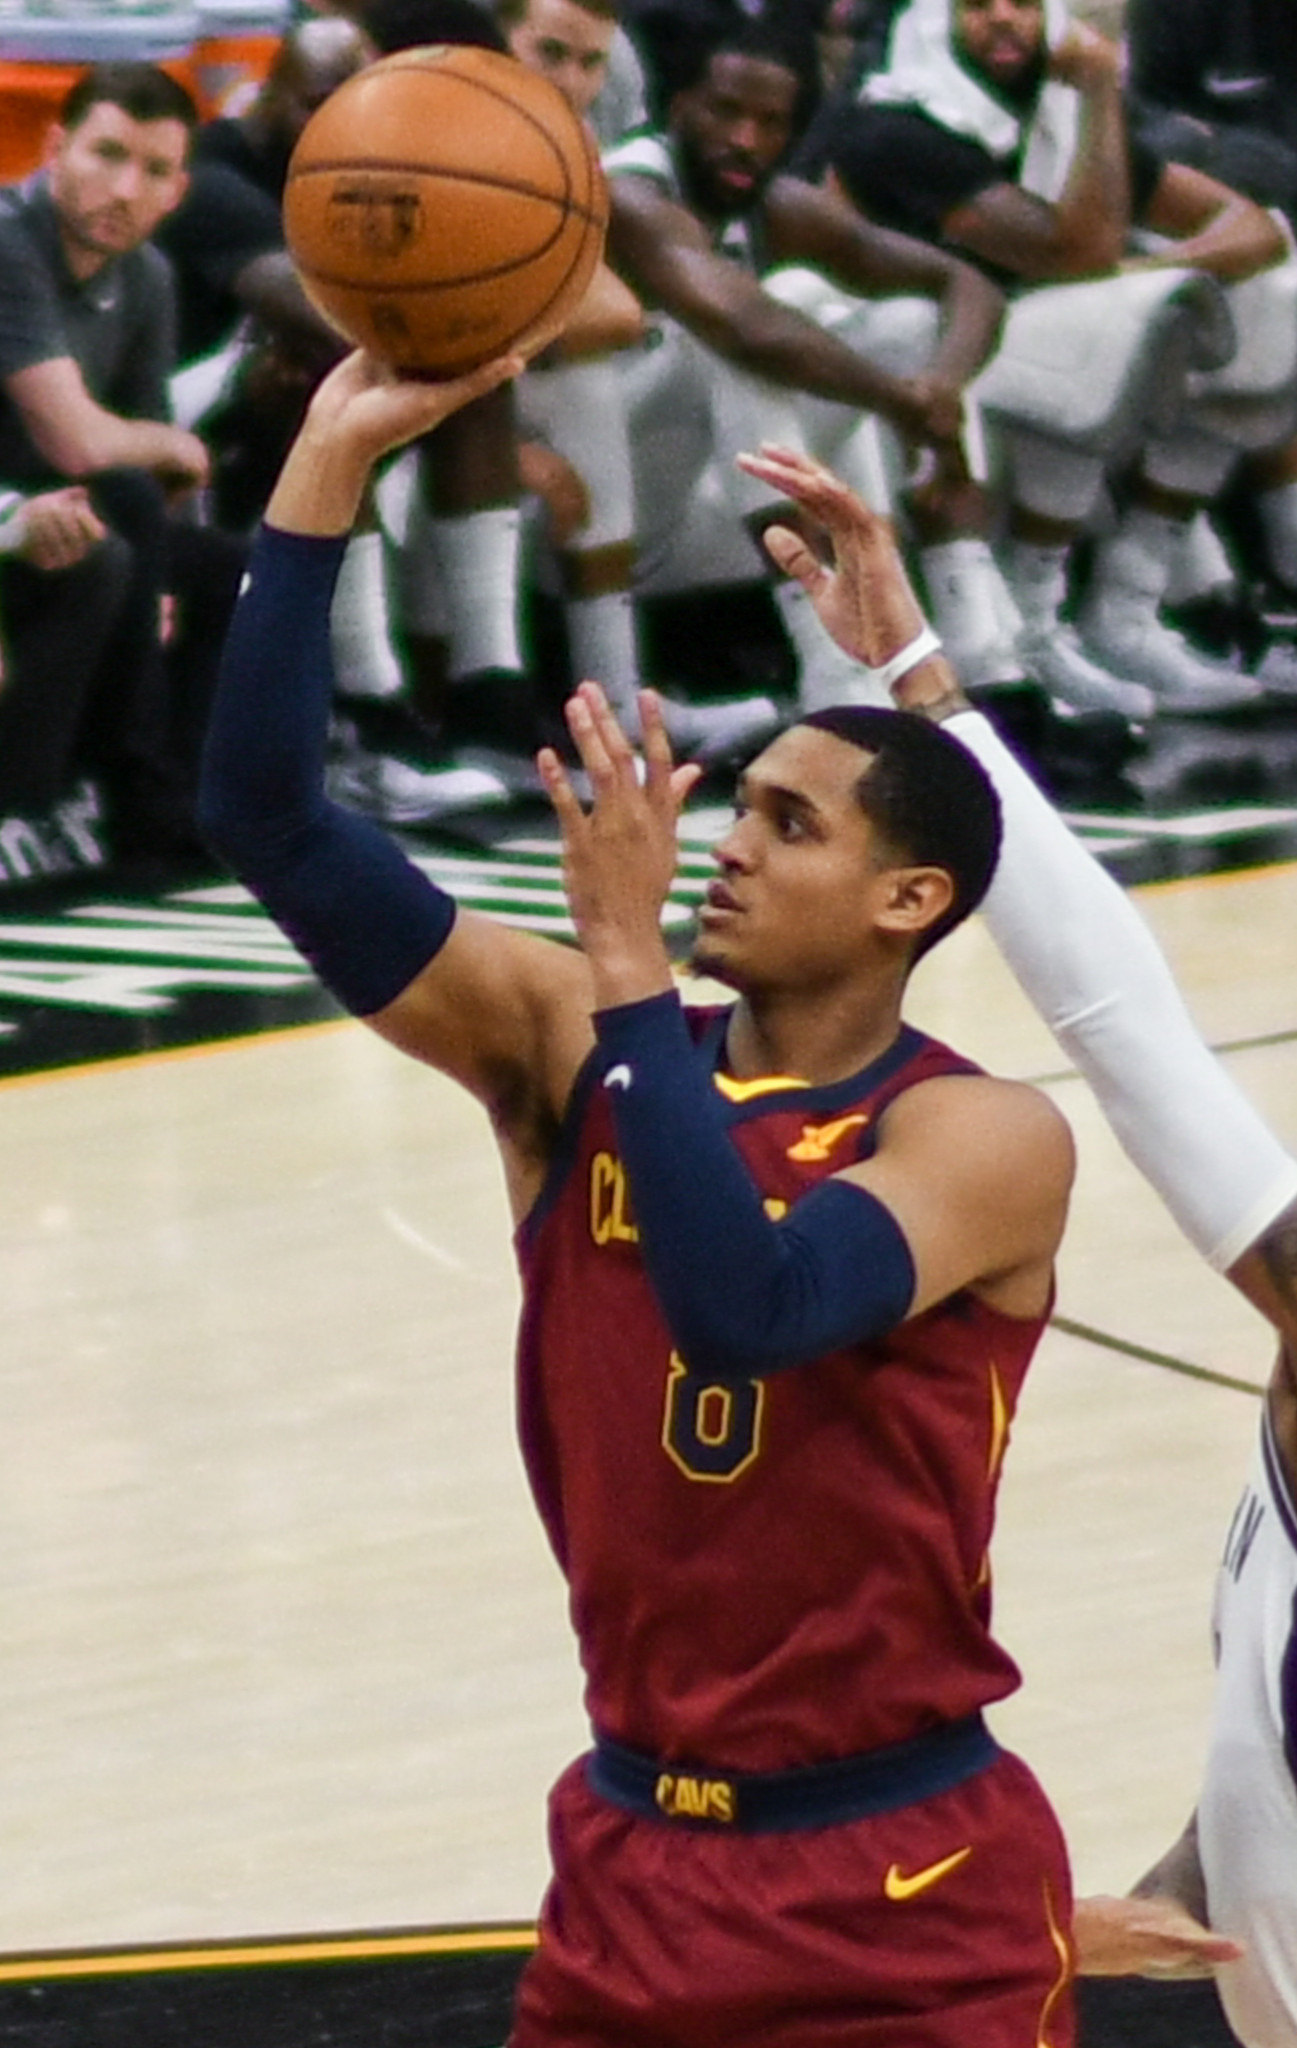 The loss of Jordan Clarkson from their line-up for the Asian Games is another blow for the Philippines